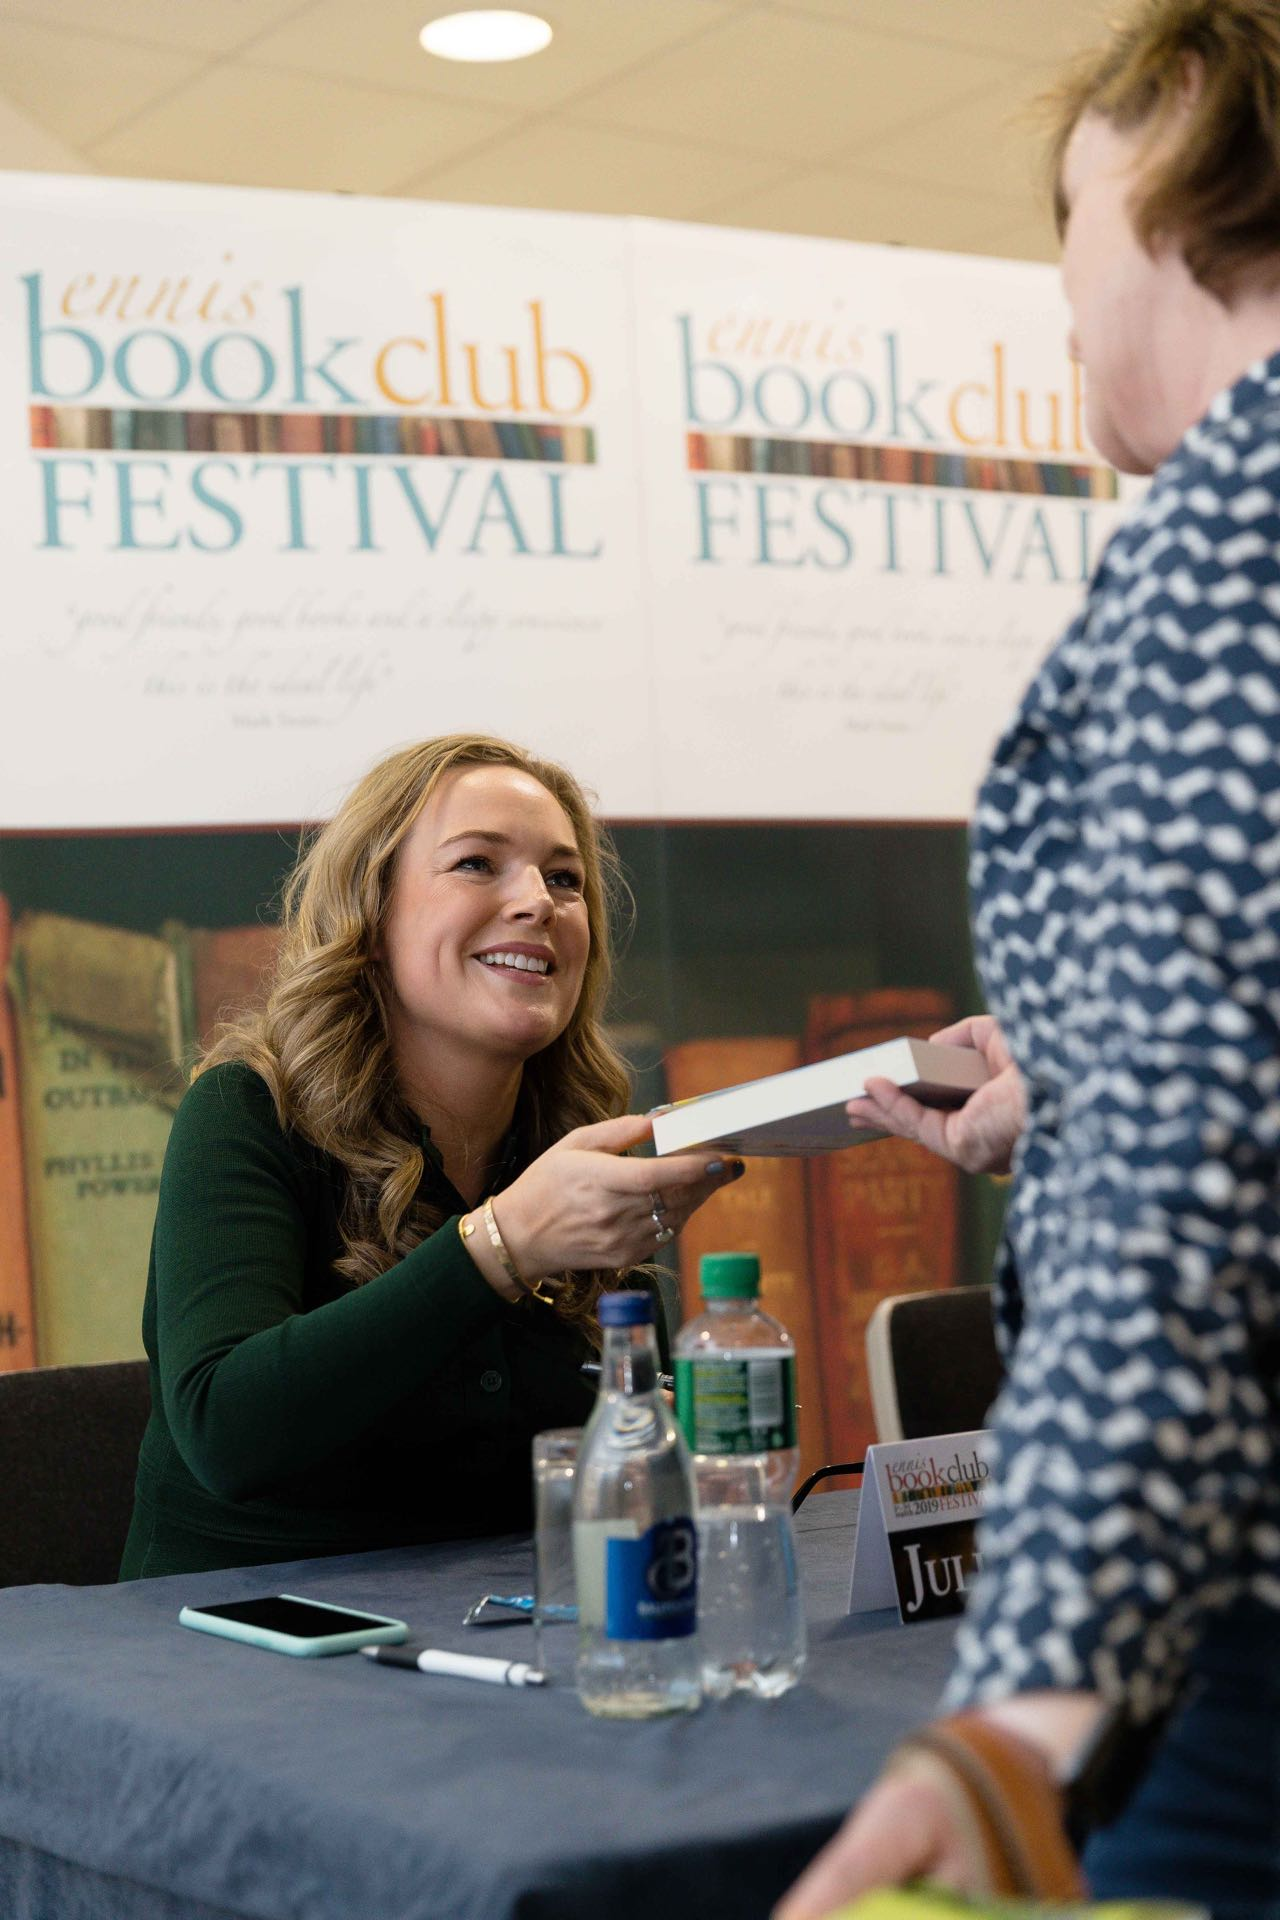 20190302_Ennis_Book_Club_Festival_2019_1592